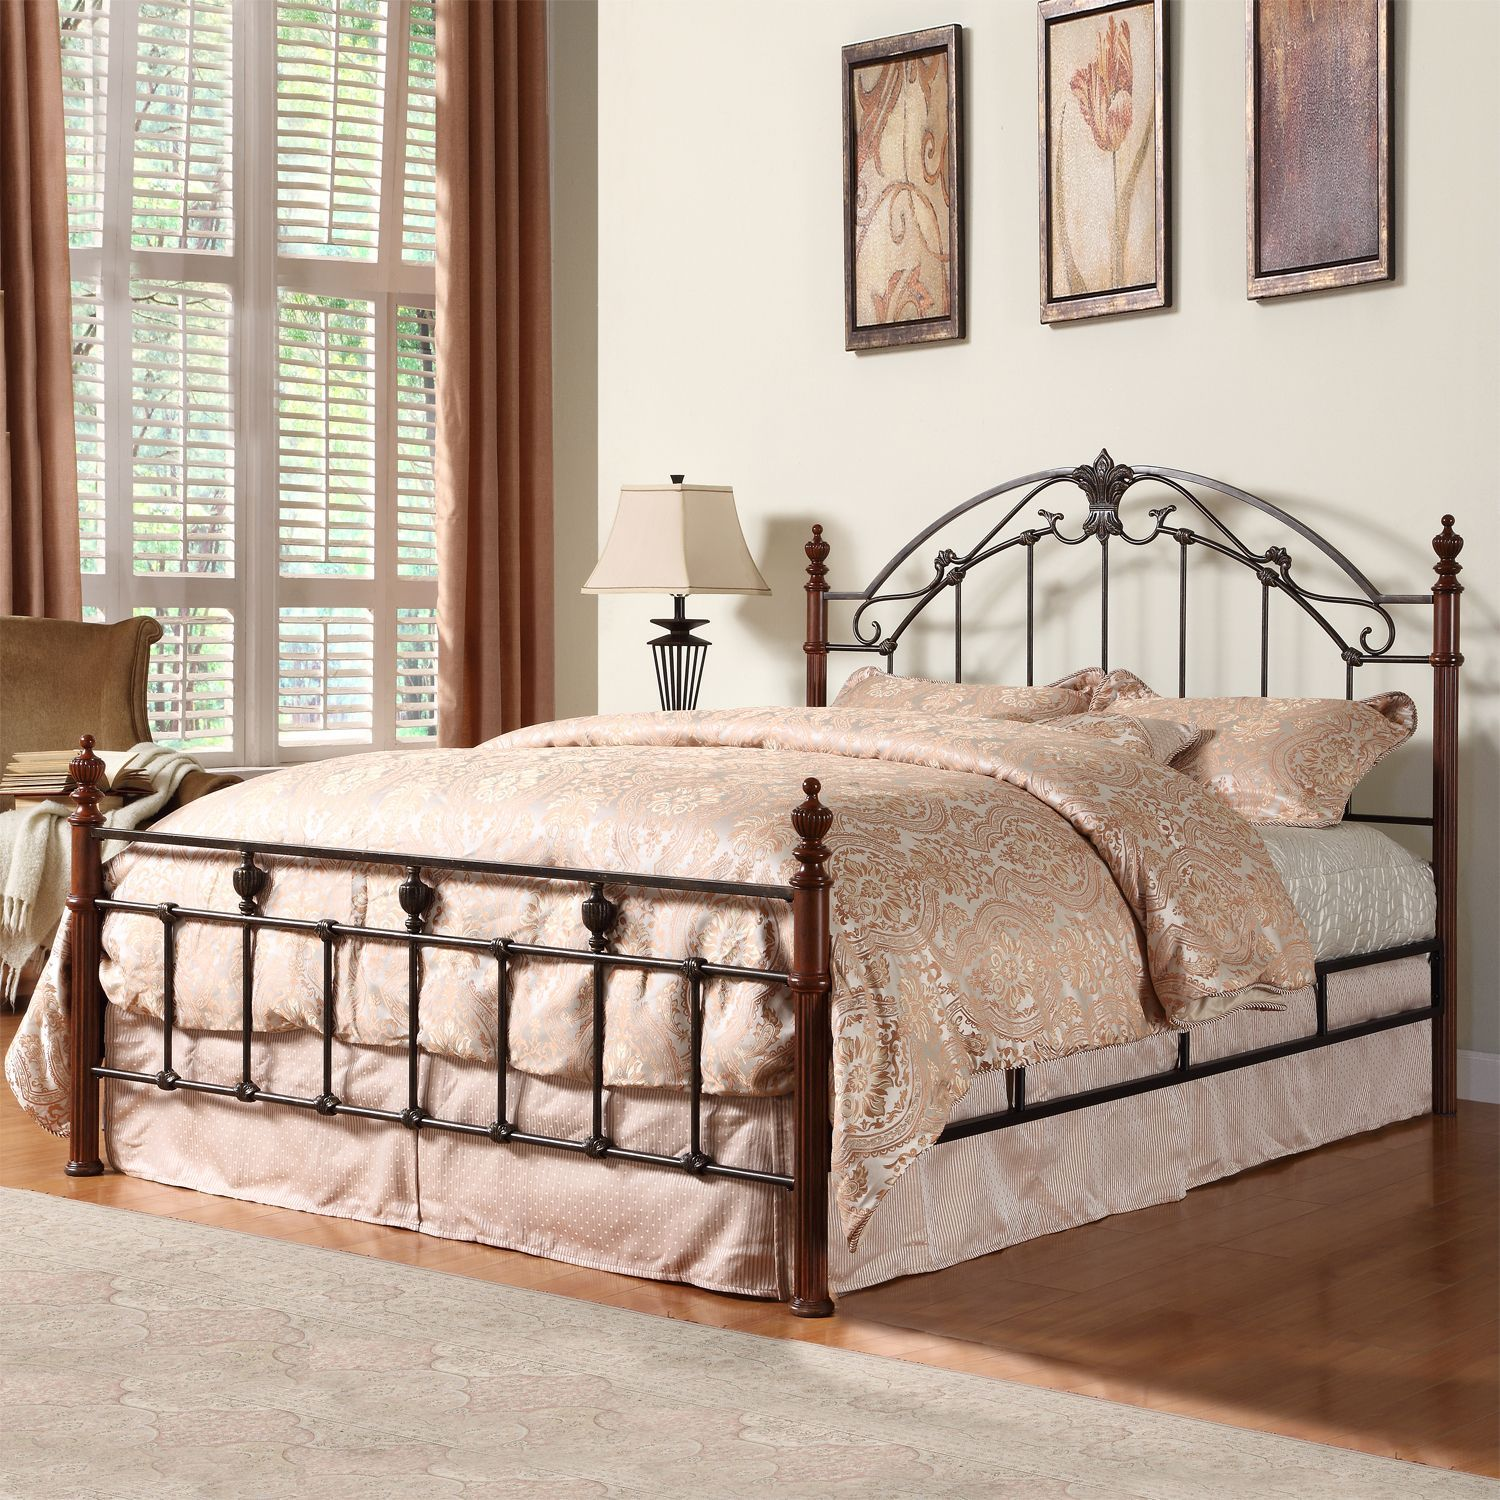 A romantic metal bed creates an old-world look. The Newcastle Bed ...